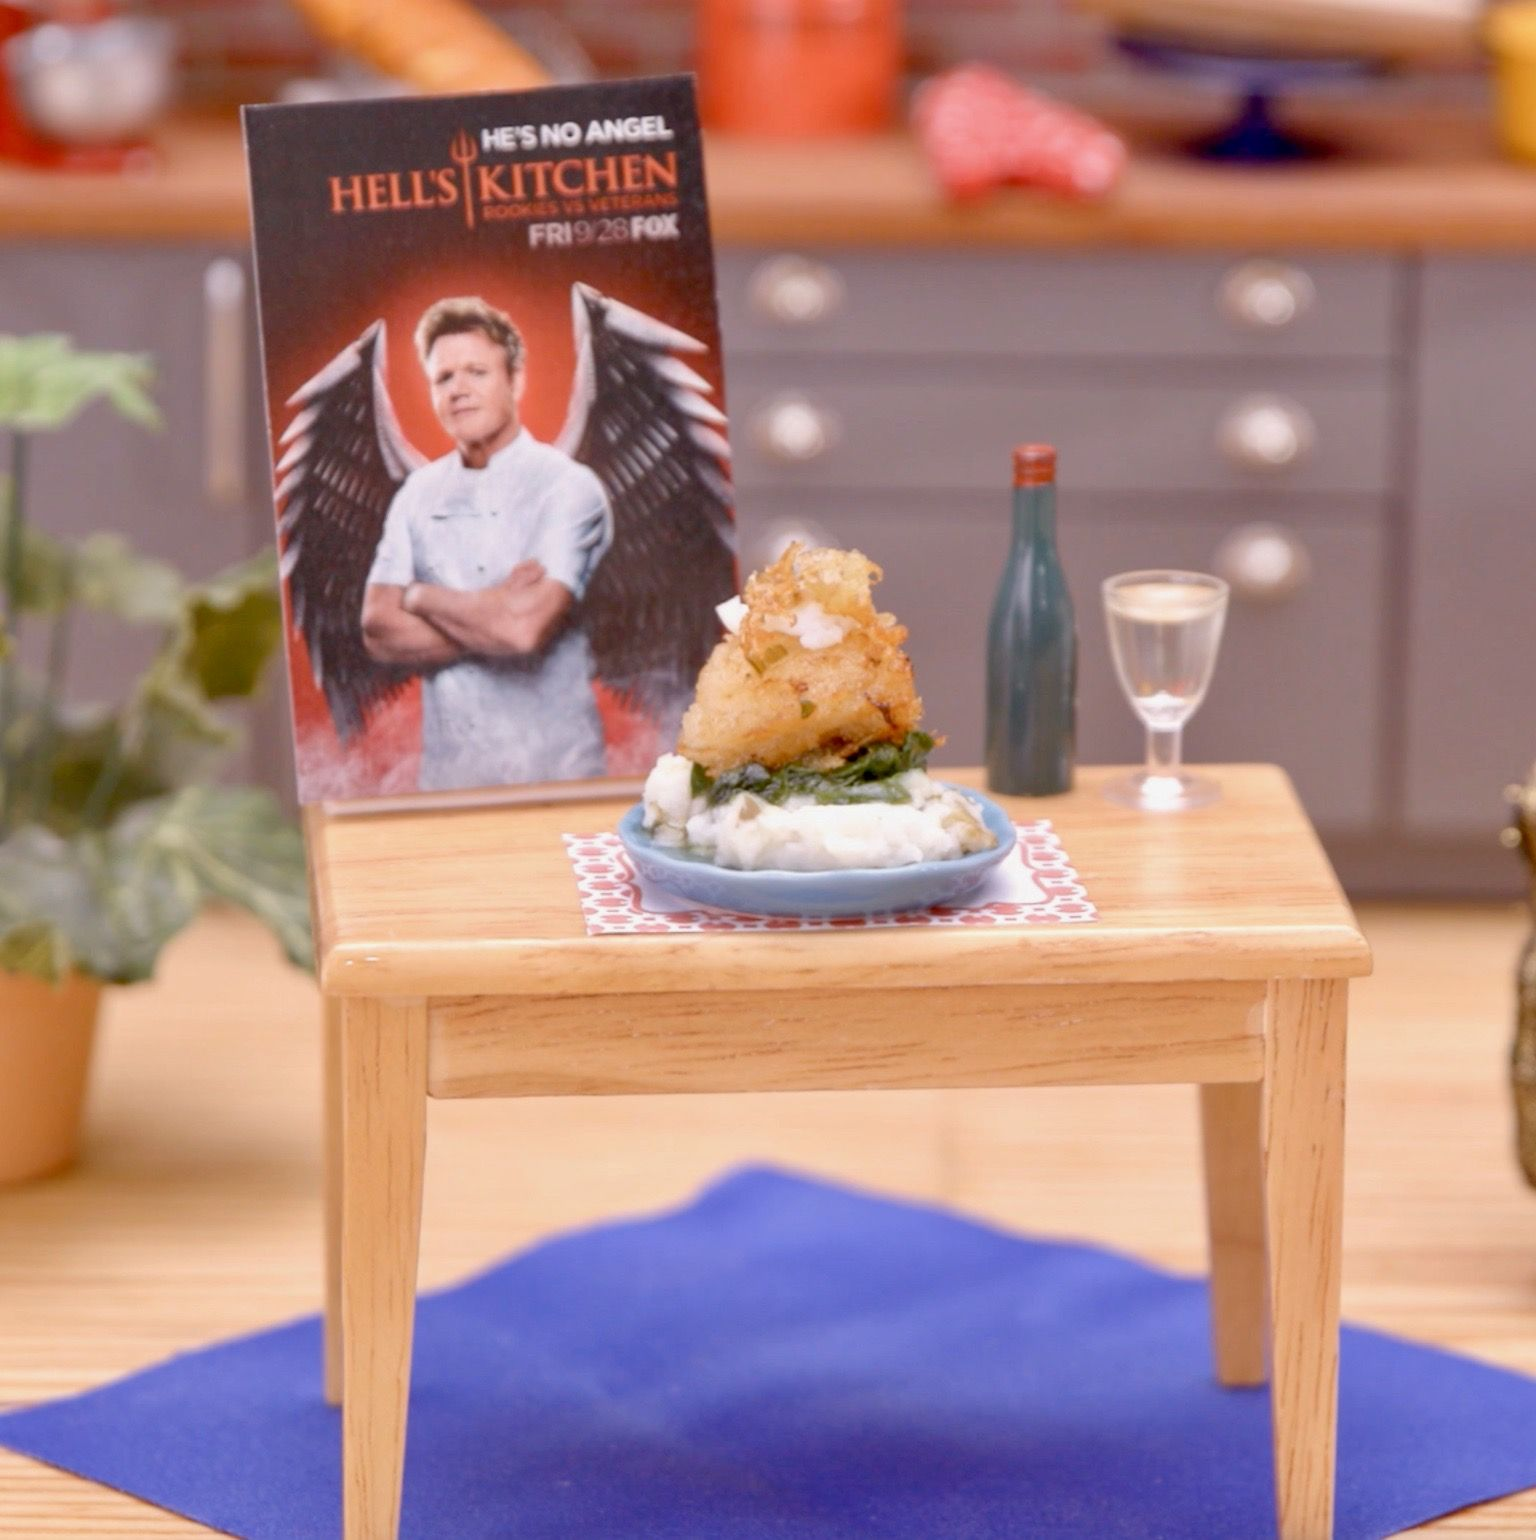 Snack on this bite-sized Hell's Kitchen helping courtesy of Tastemade, before the season premiere tonight at 9/8c on FOX! ???? #tinykitchens